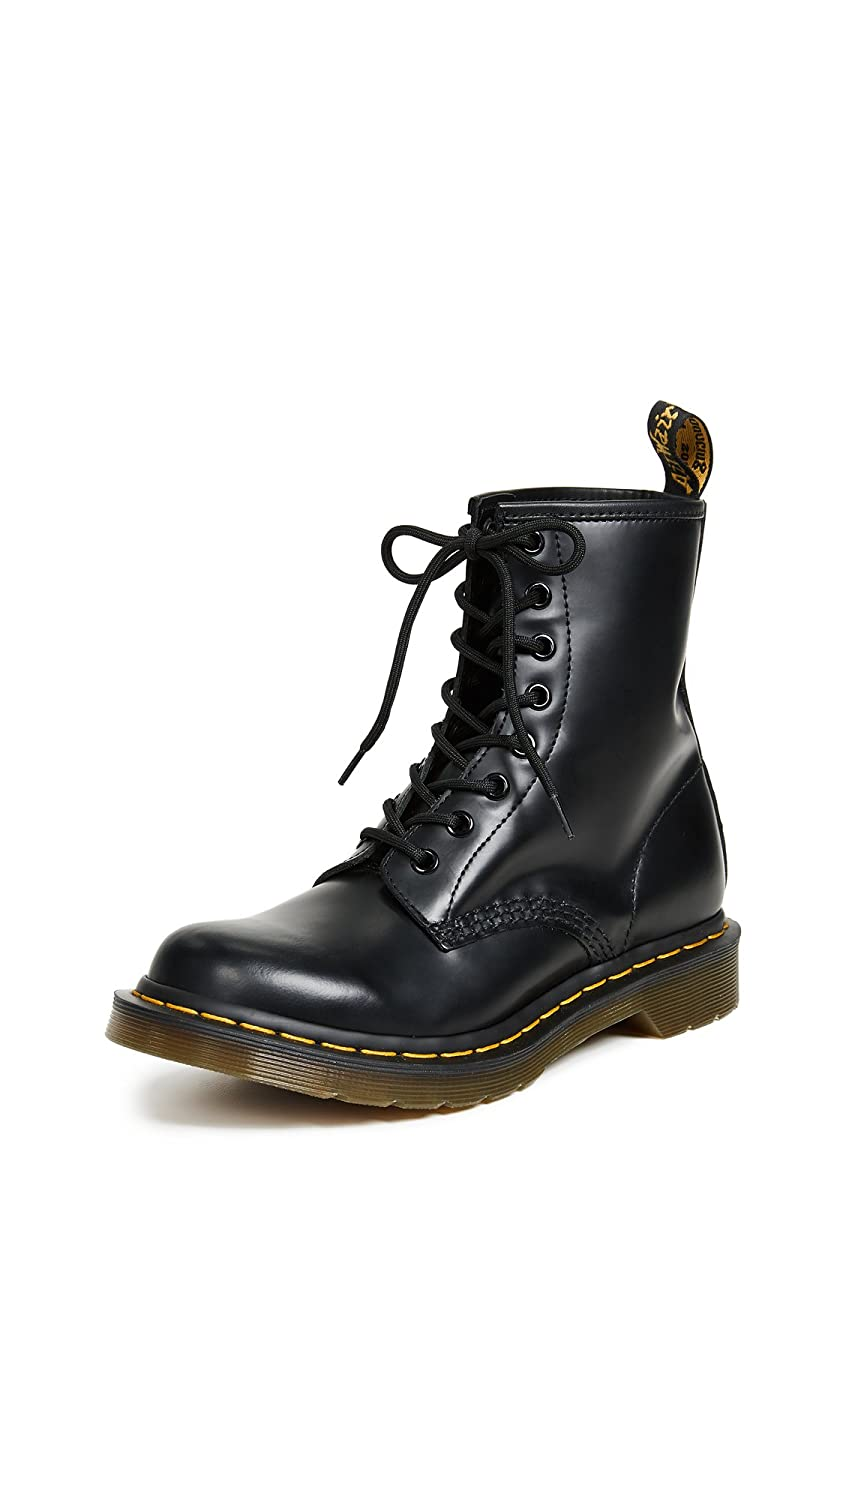 Dr. Martens Women's 1460 8 Eye Boots, Black, 8 M US Dr. Martens-Women's